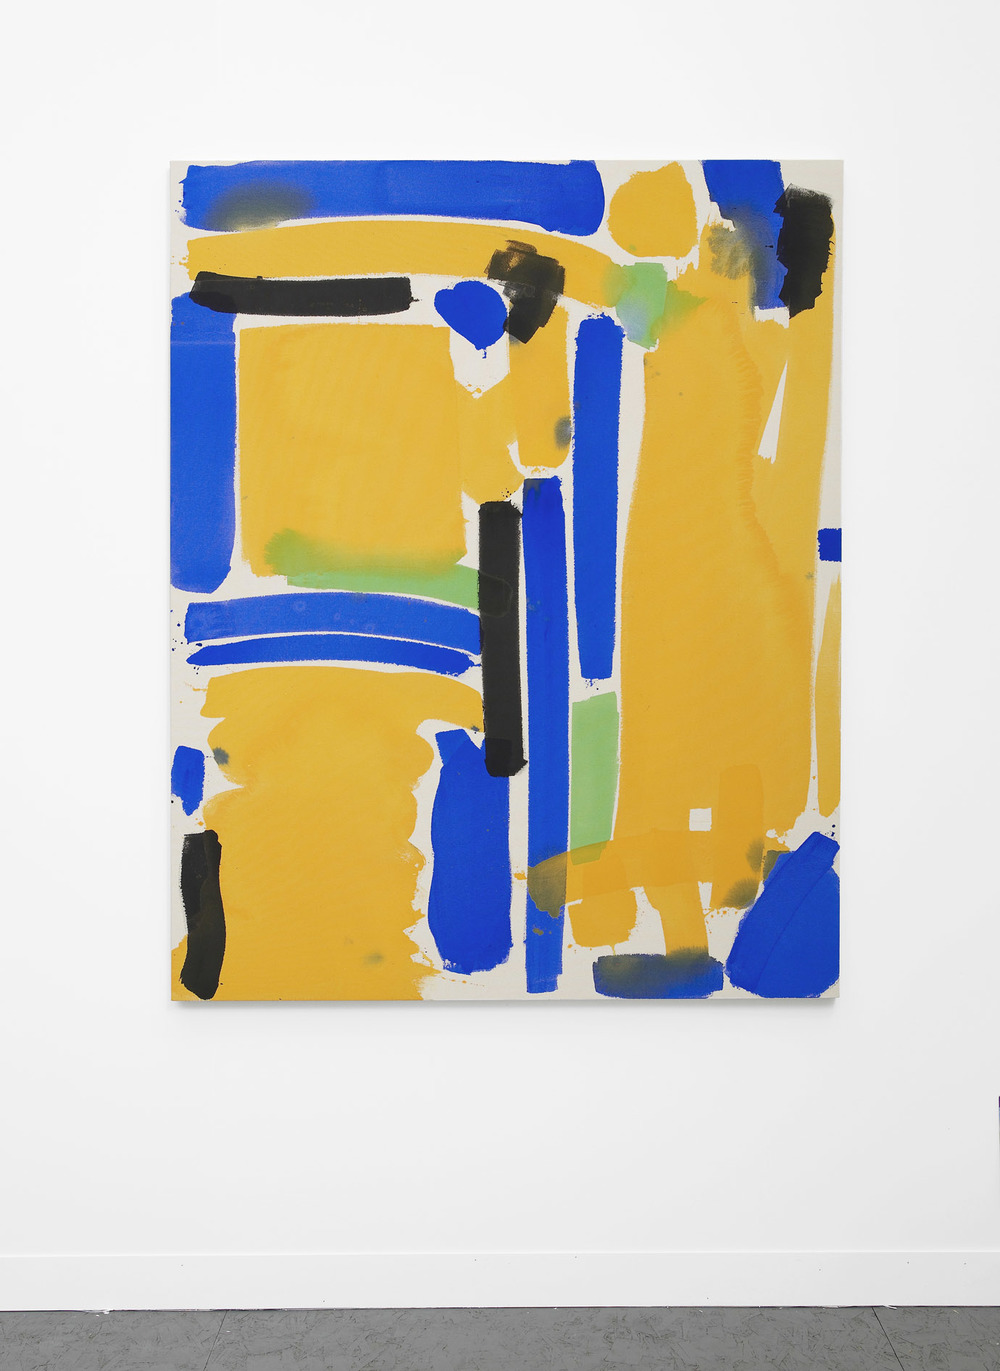 No Input (yellow, blue, green)  2013  Acrylic on canvas  152.4 x 121.9 cm / 60 x 48 in